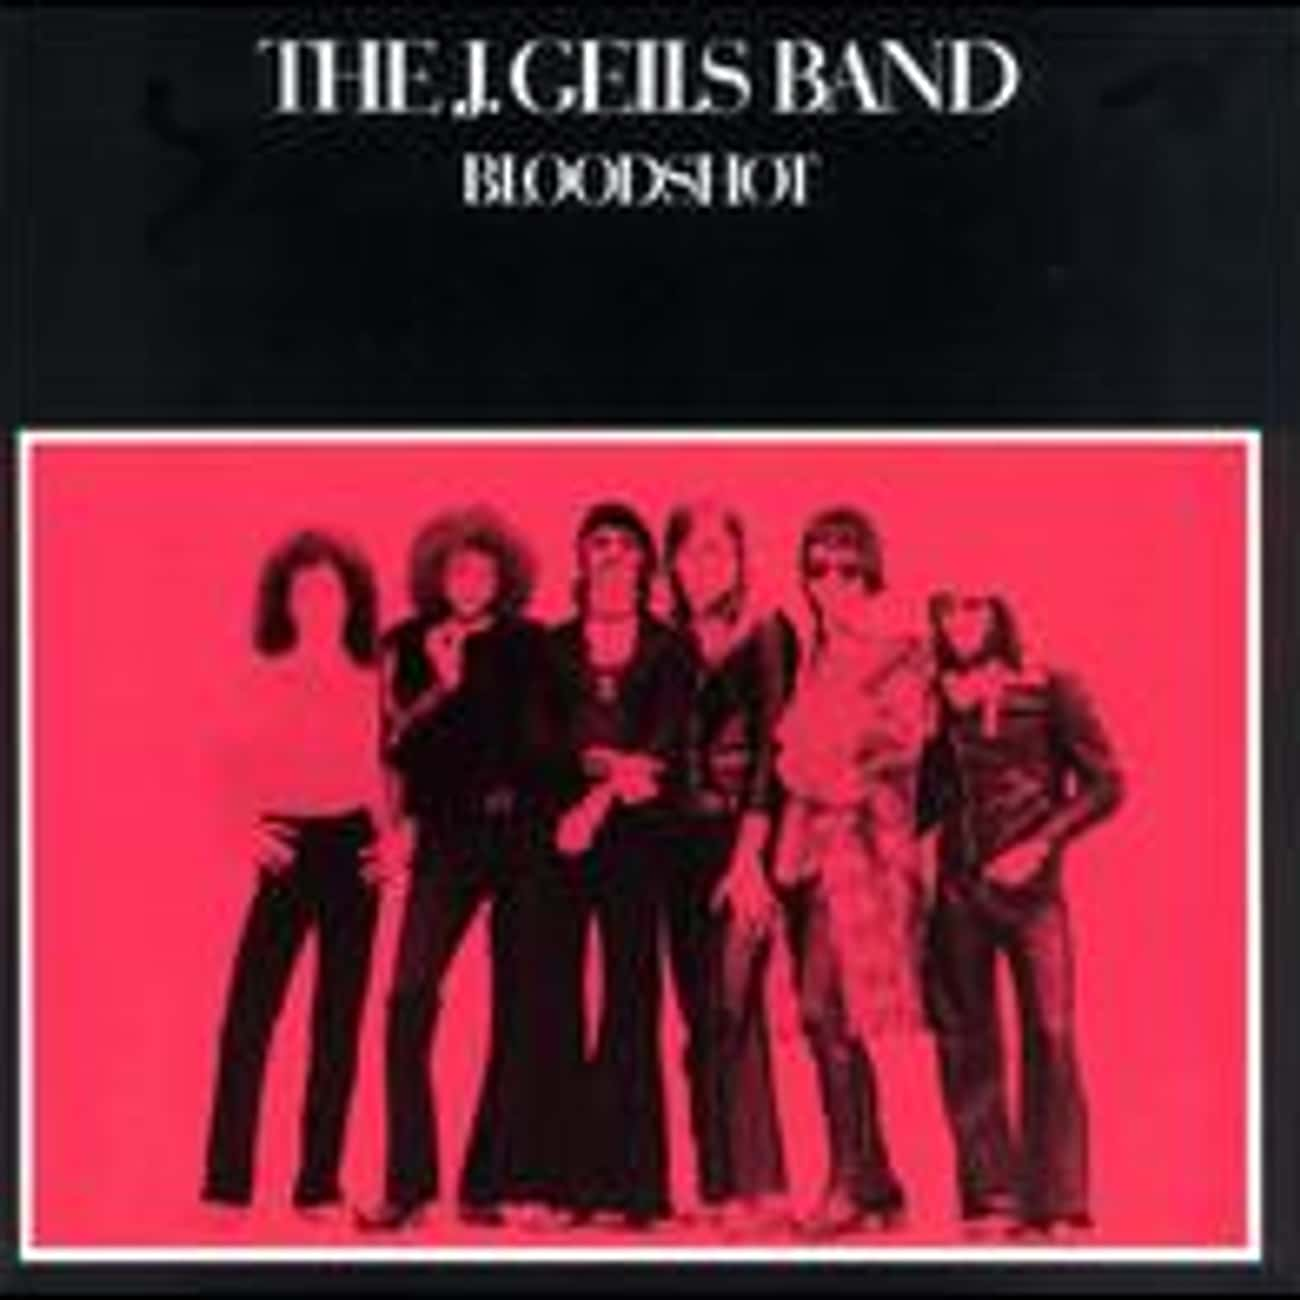 Bloodshot is listed (or ranked) 1 on the list The Best J. Geils Band Albums of All Time